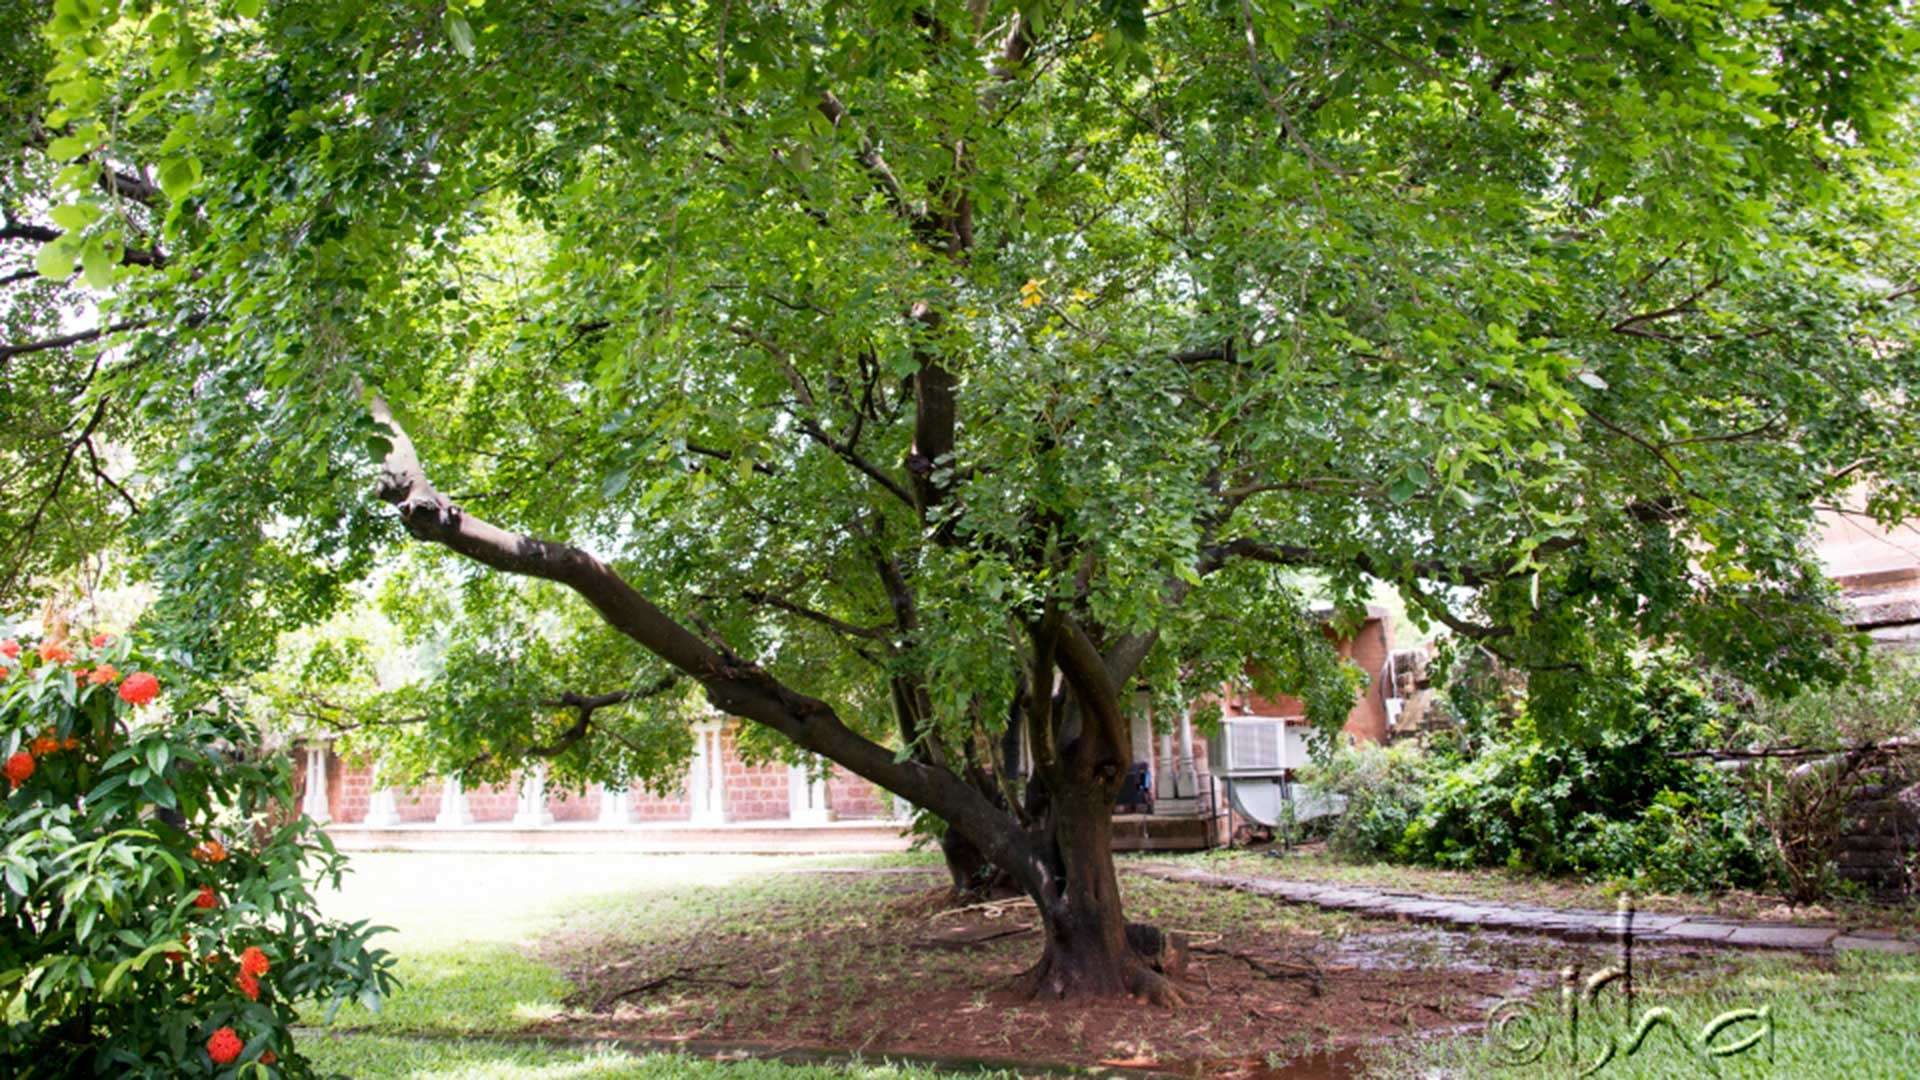 Can Trees Support In Creating A Meditative Space